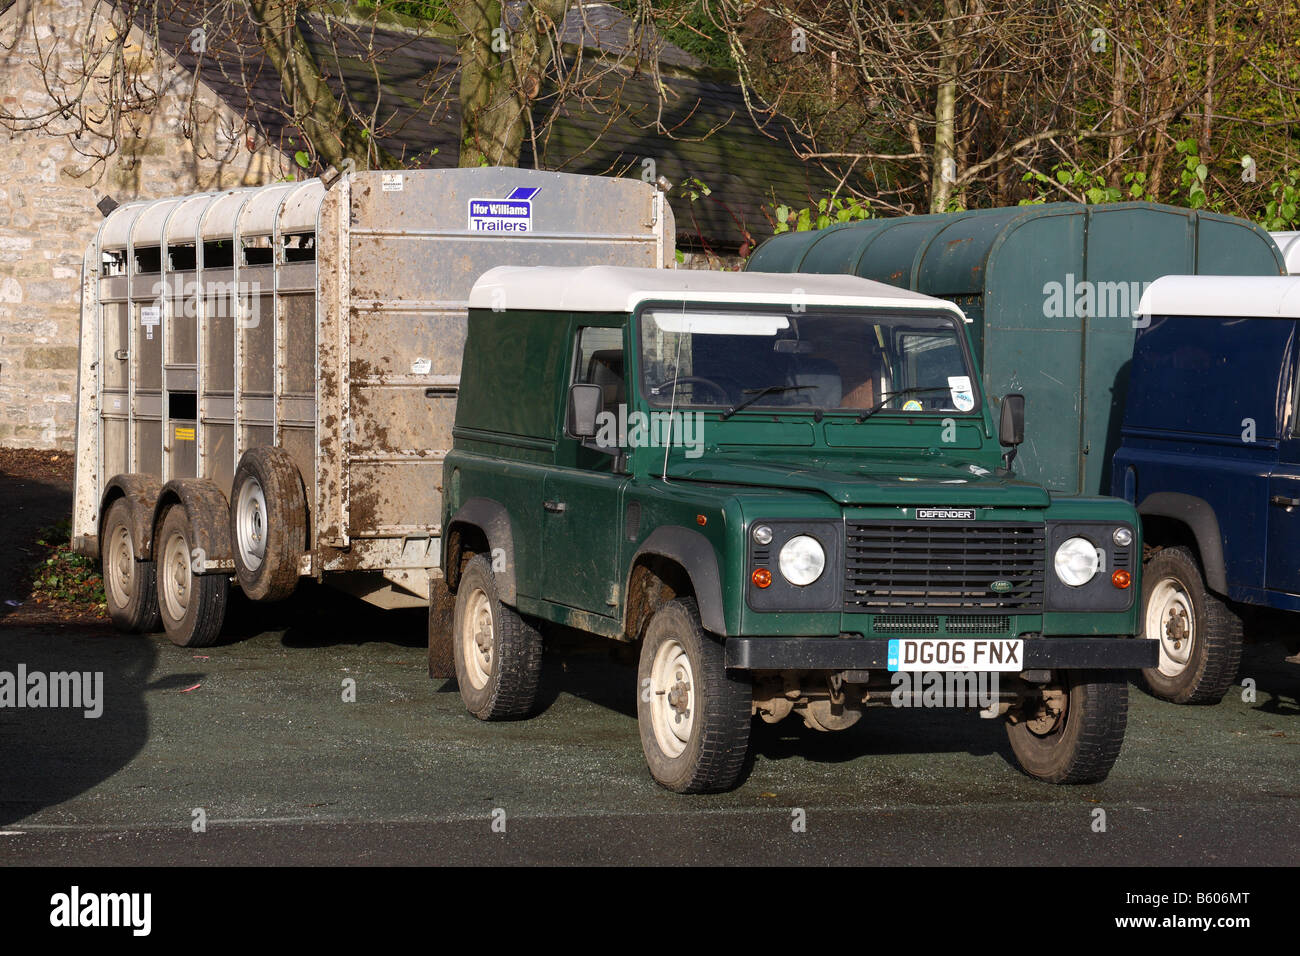 Land Rover Defender Uk Stock Photos Electric Brake Controller Australian Owners And Trailer Image